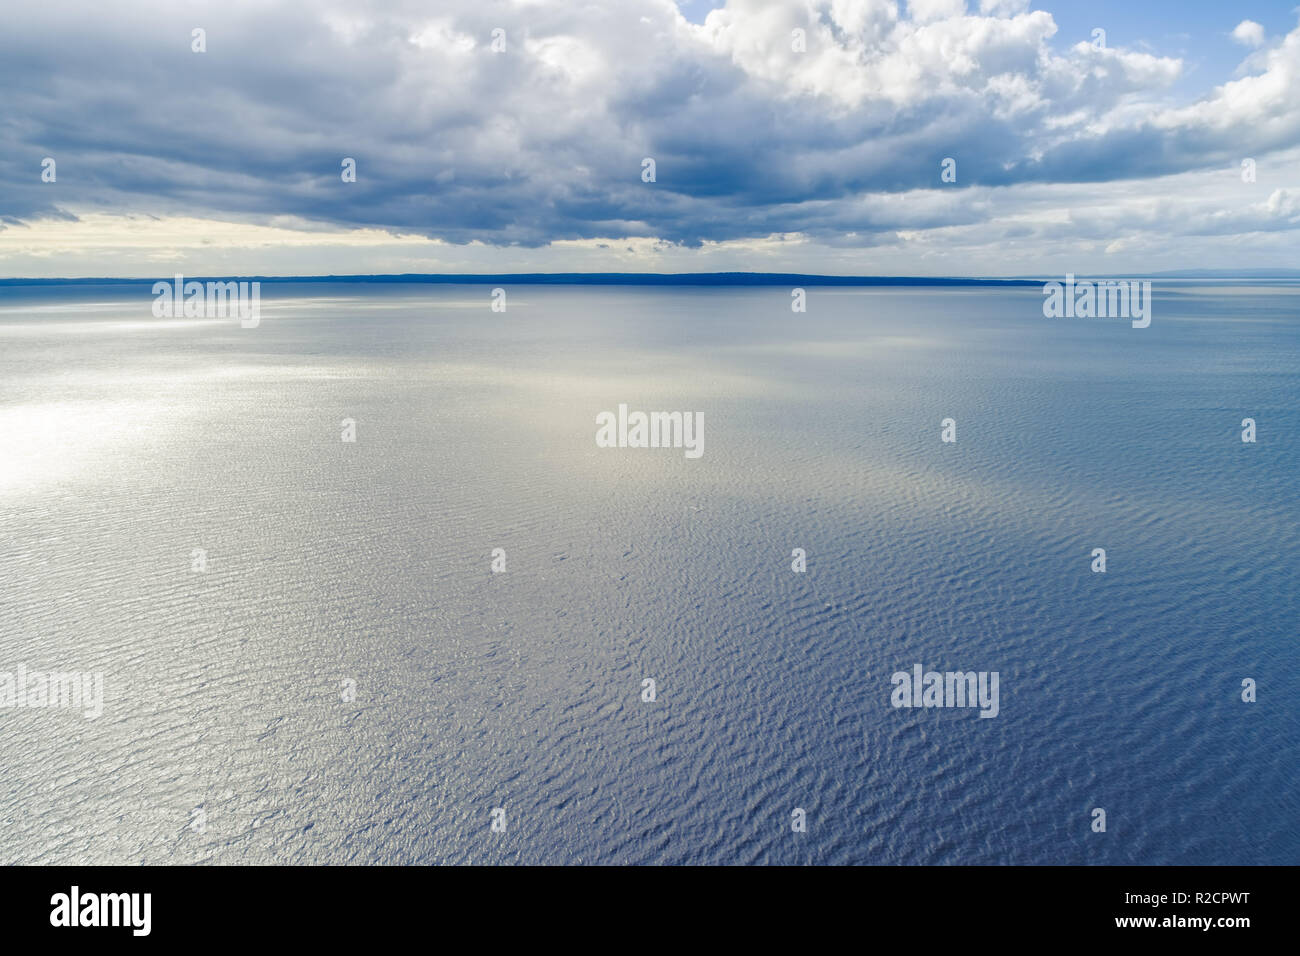 Small patch of land on the horizon with clouds over water - aerial landscape - Stock Image